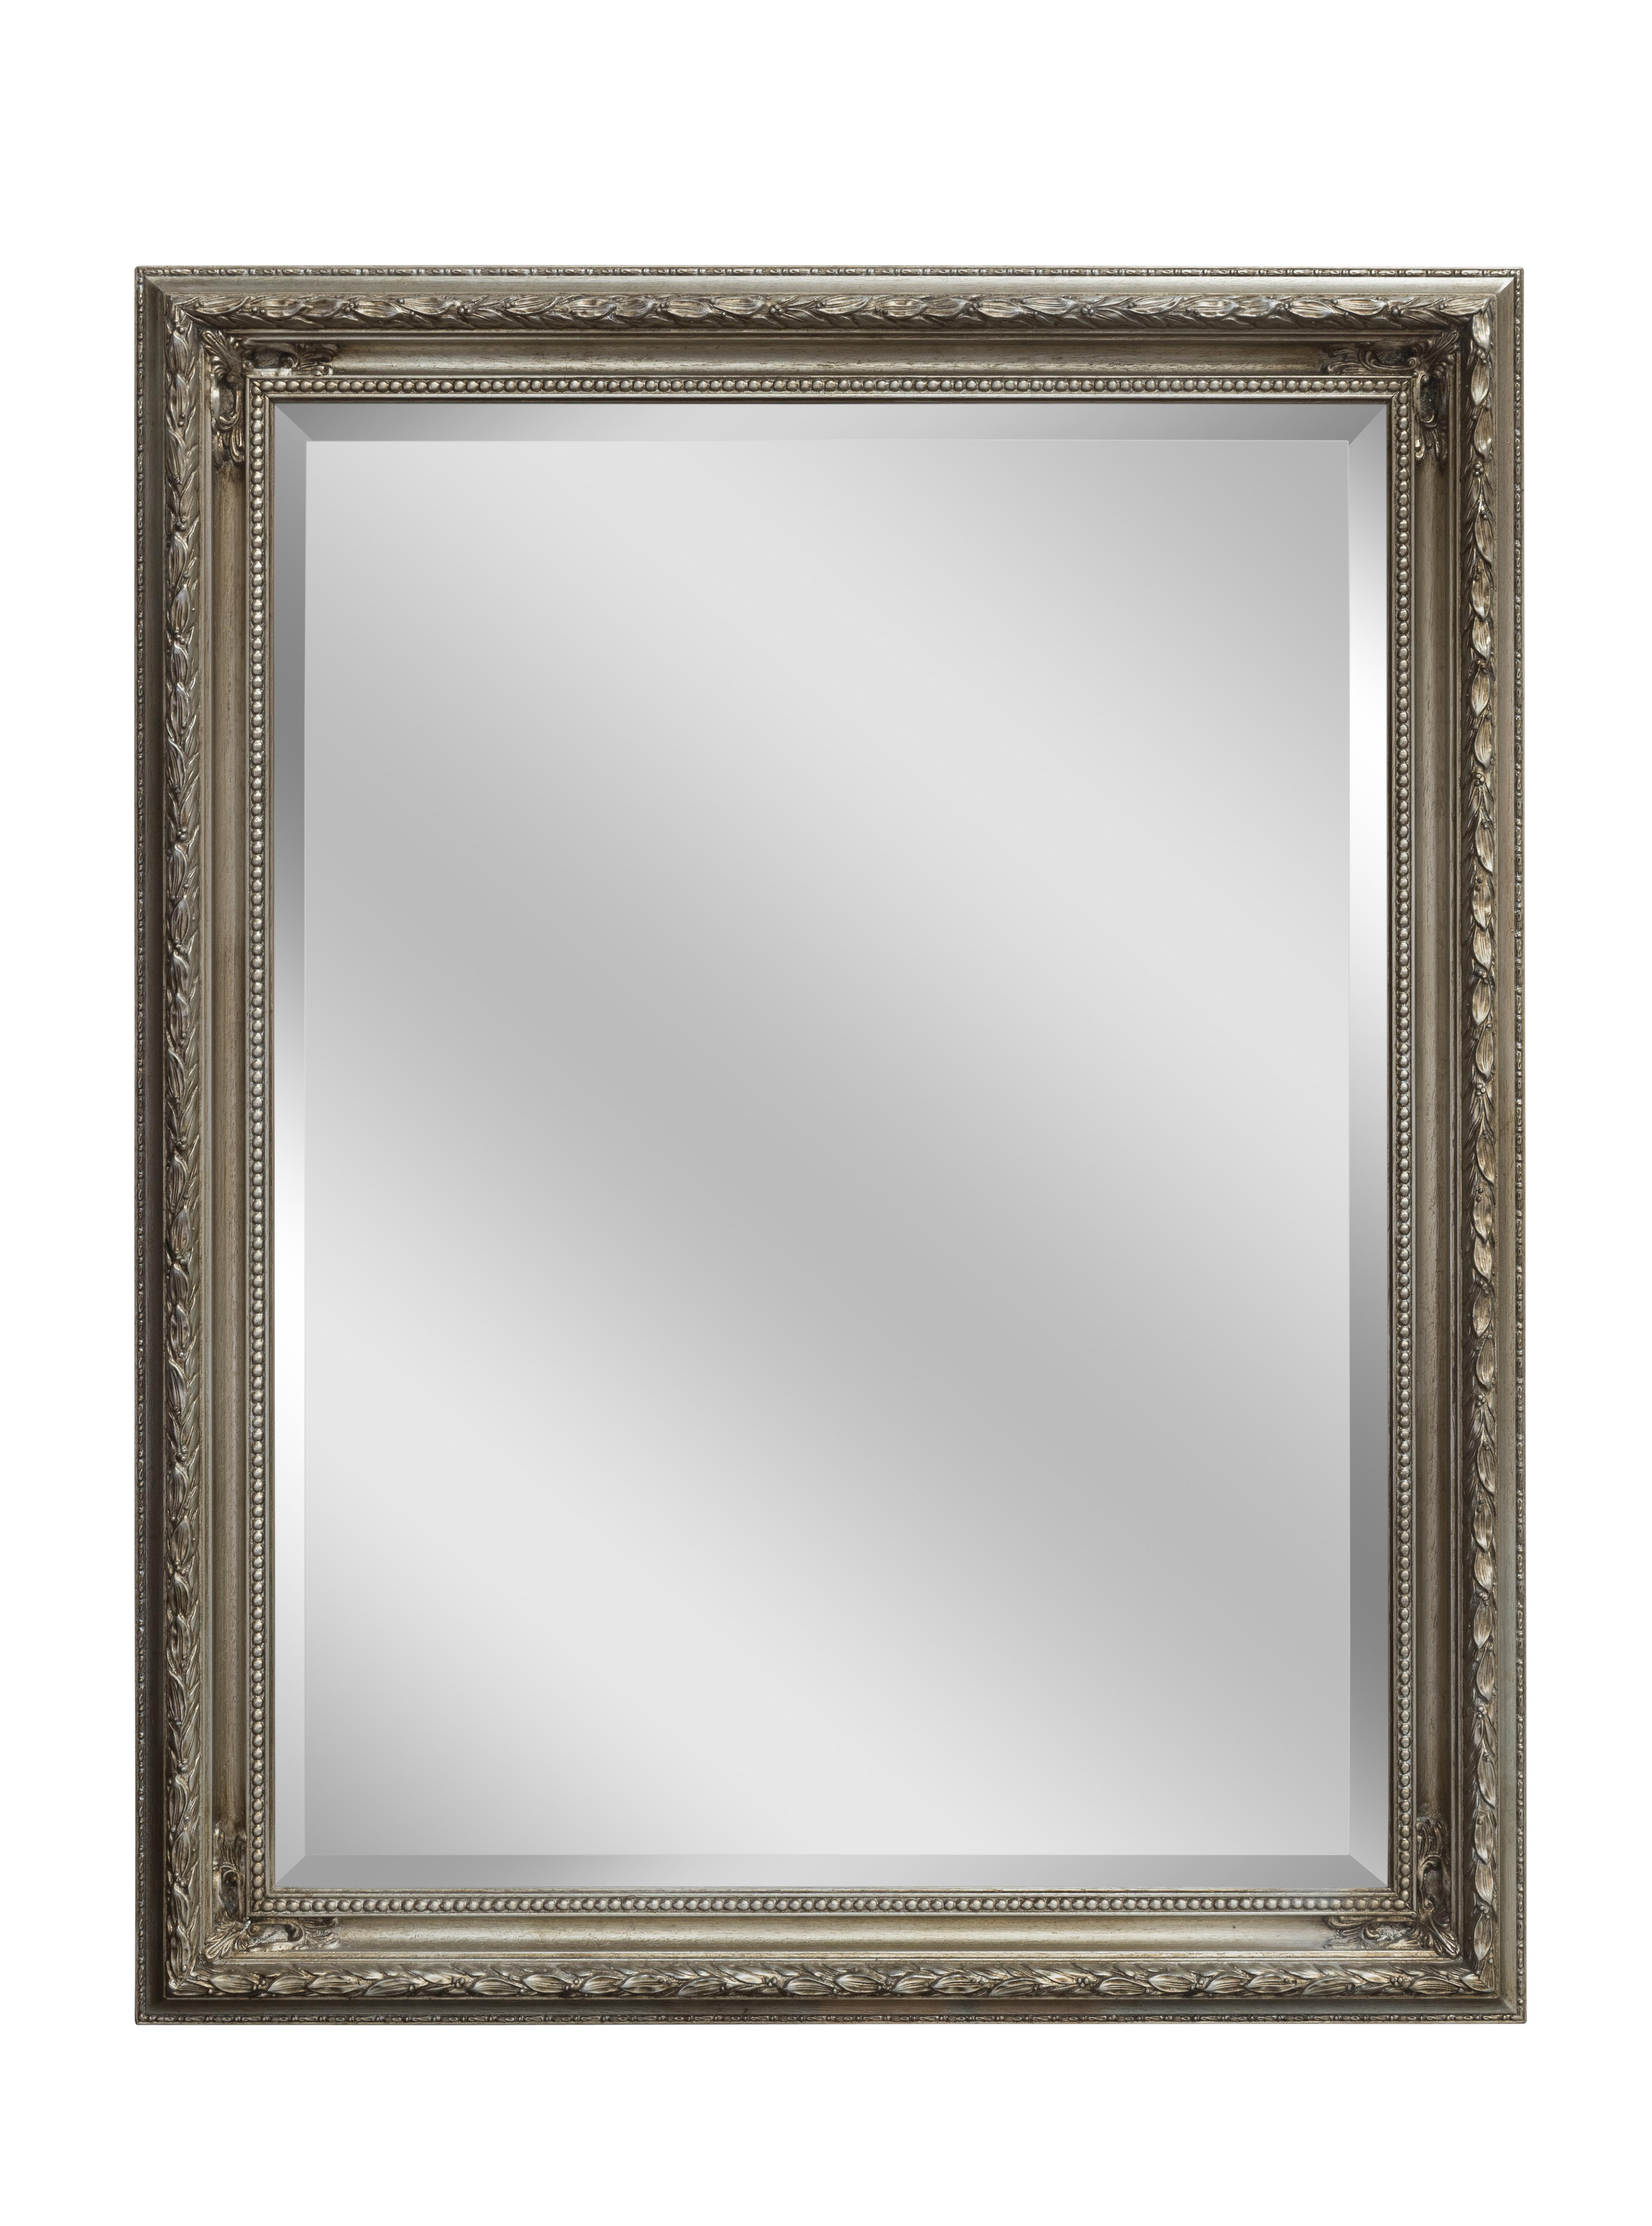 Silver Baroque Mirror | Large Mirrors For Sale – Panfili Mirrors With Baroque Mirror Silver (Image 16 of 20)